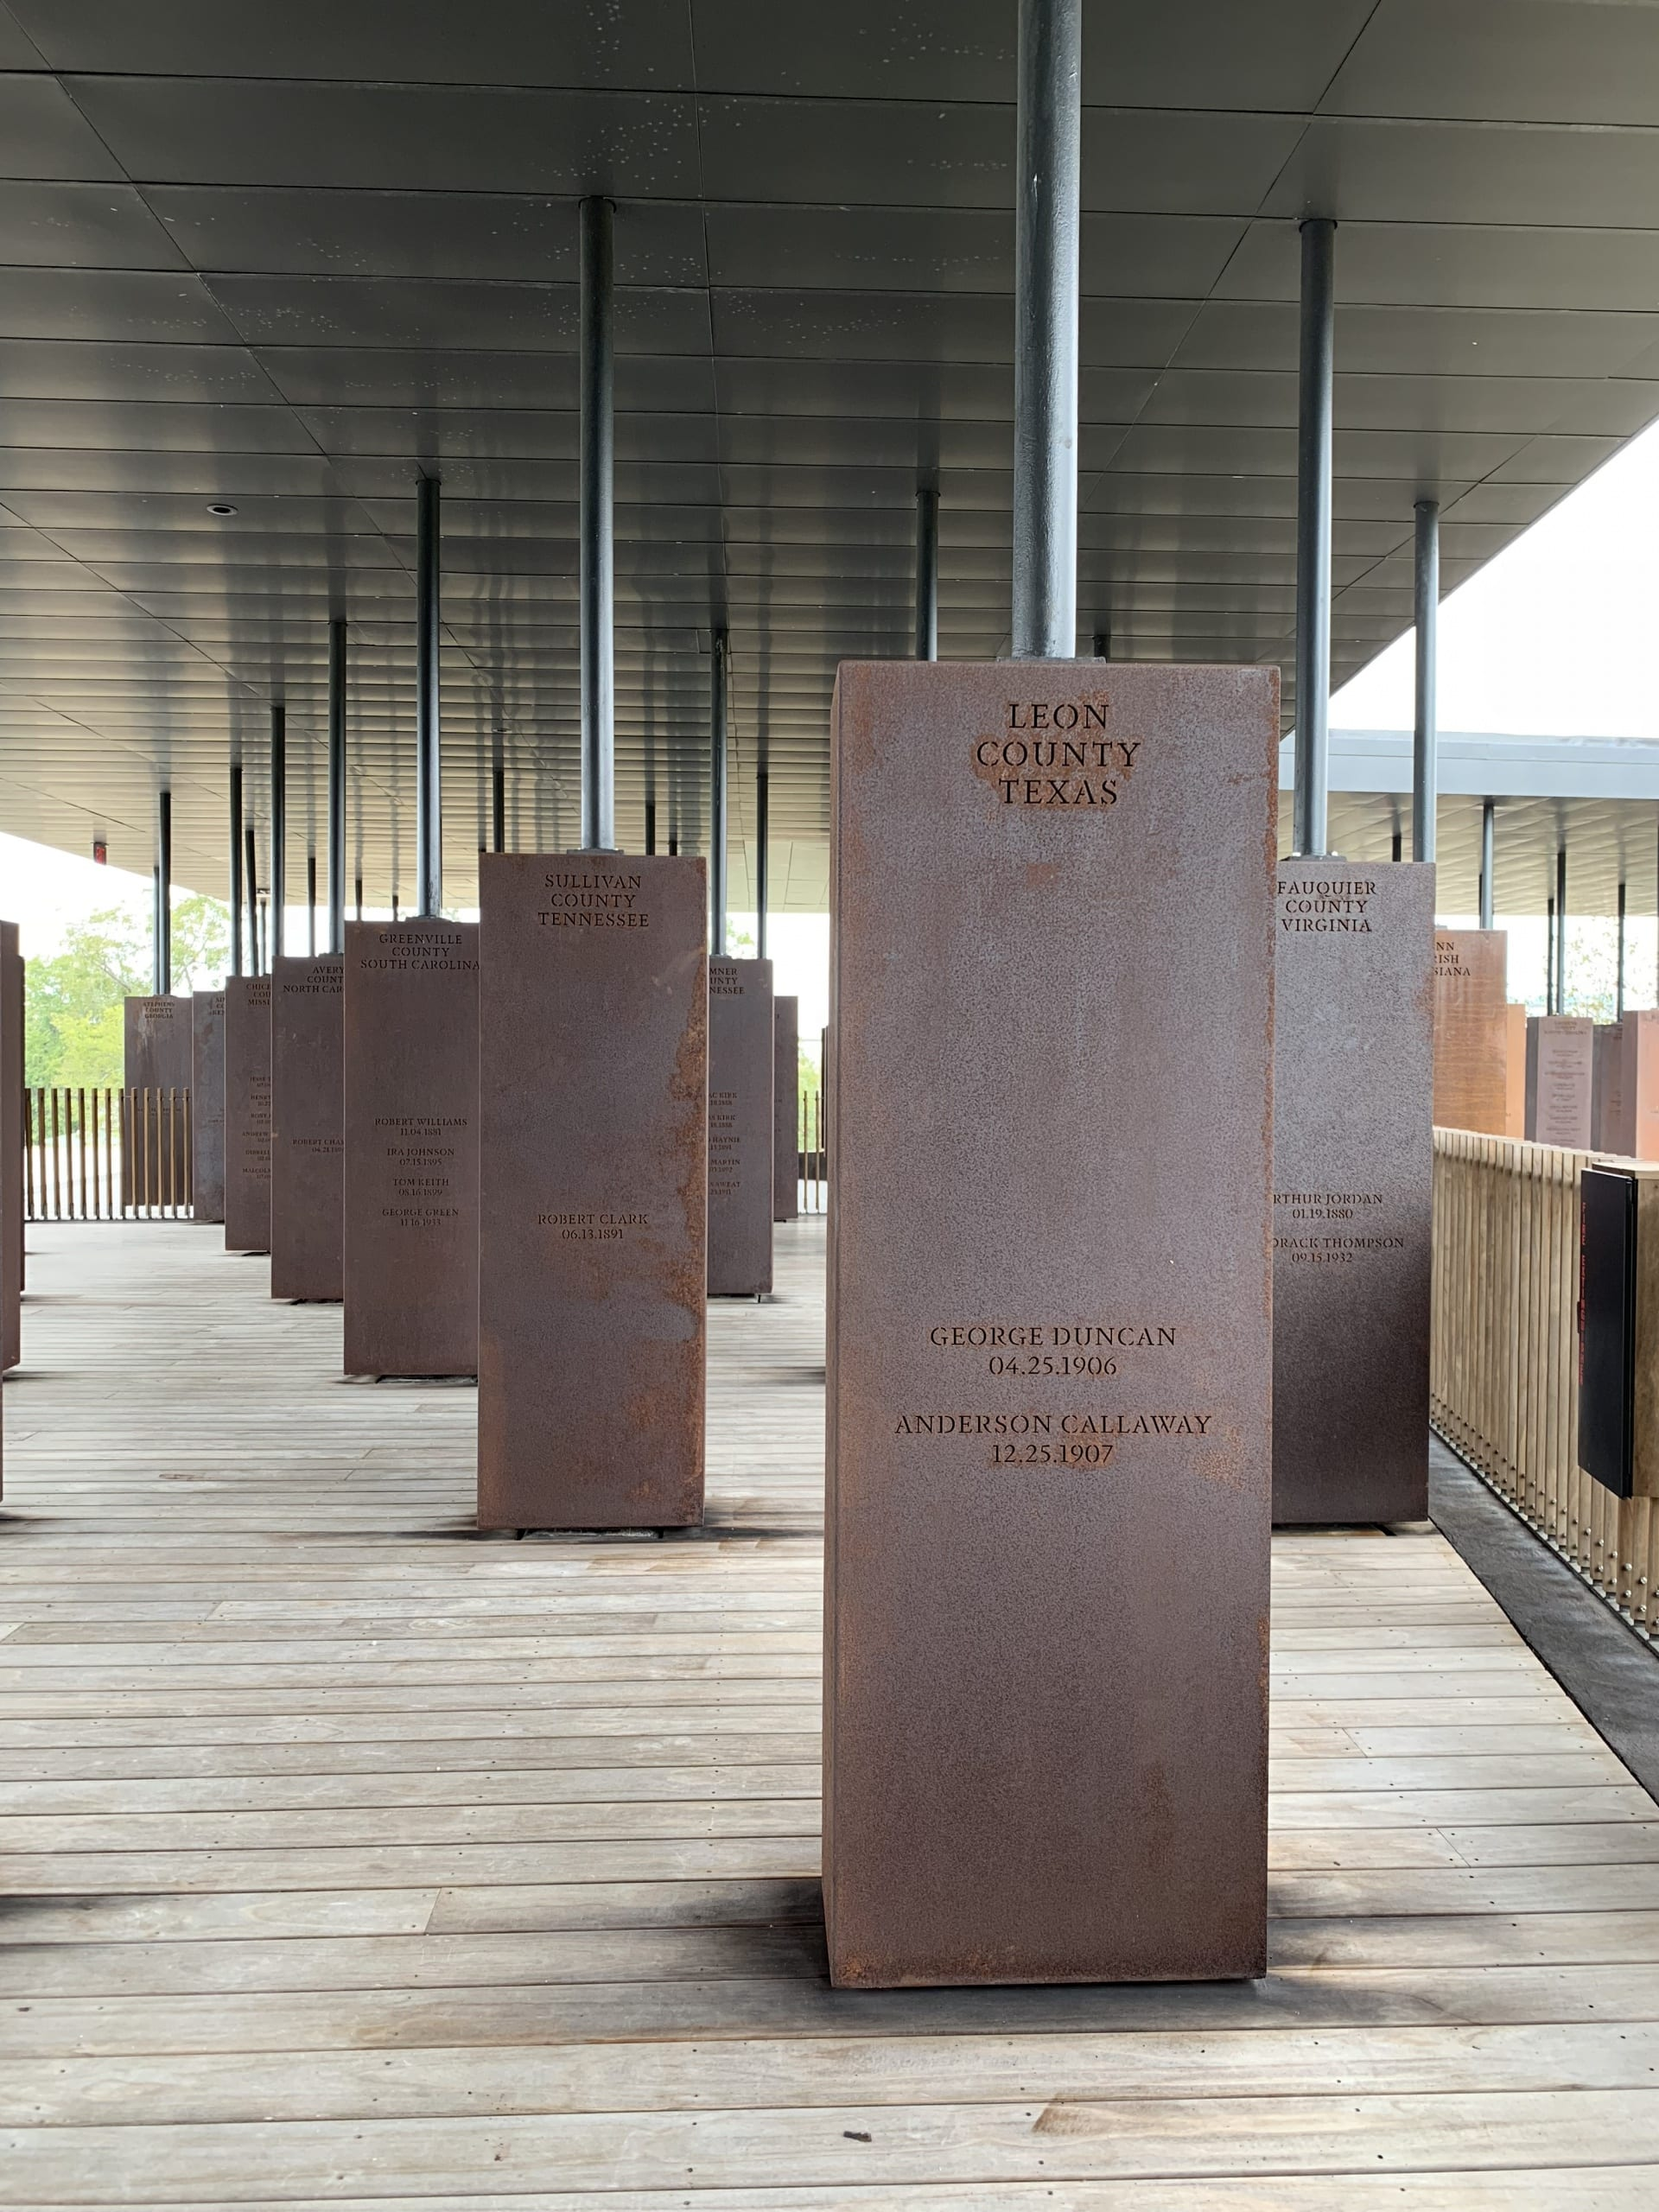 view of multiple stelae in memorial